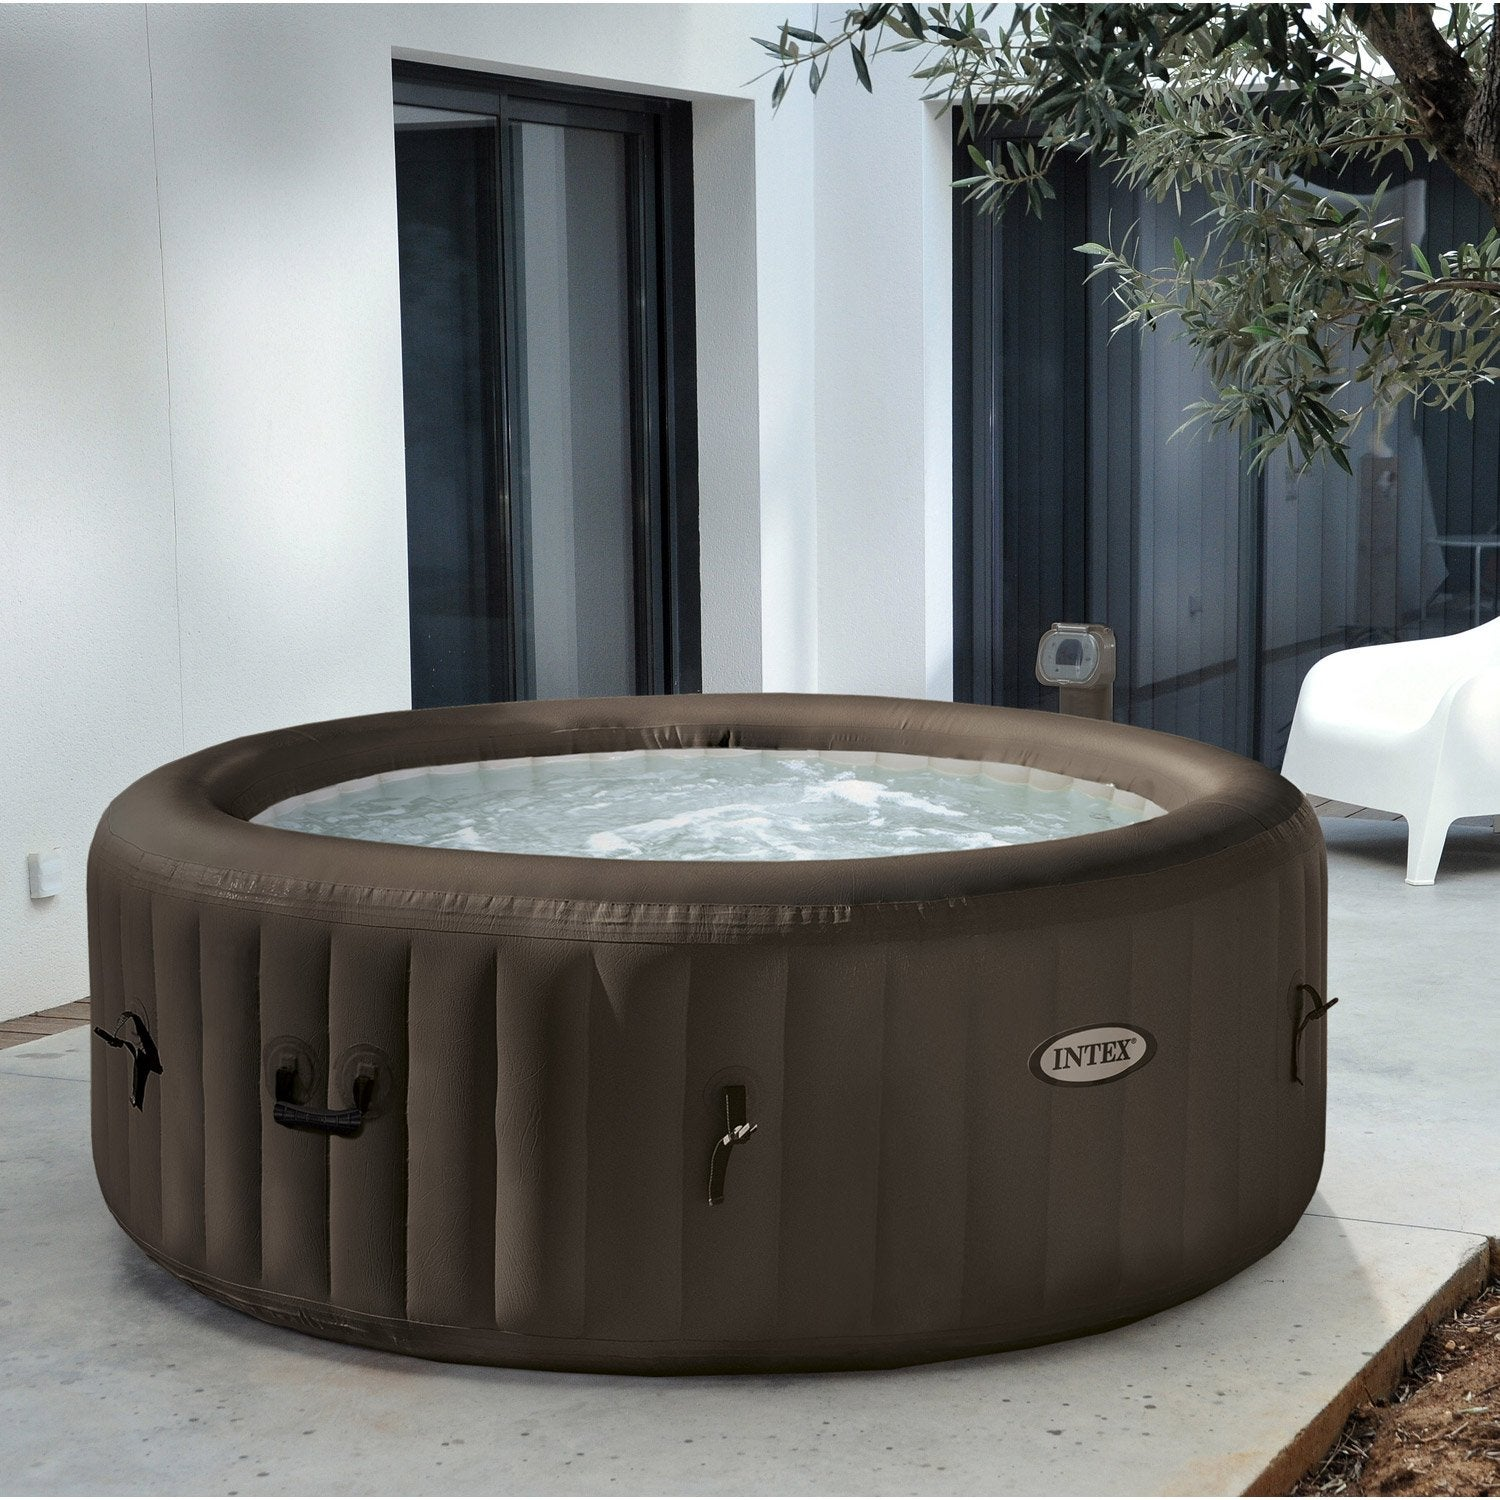 spa gonflable intex purespa jets rond 4 places assises. Black Bedroom Furniture Sets. Home Design Ideas